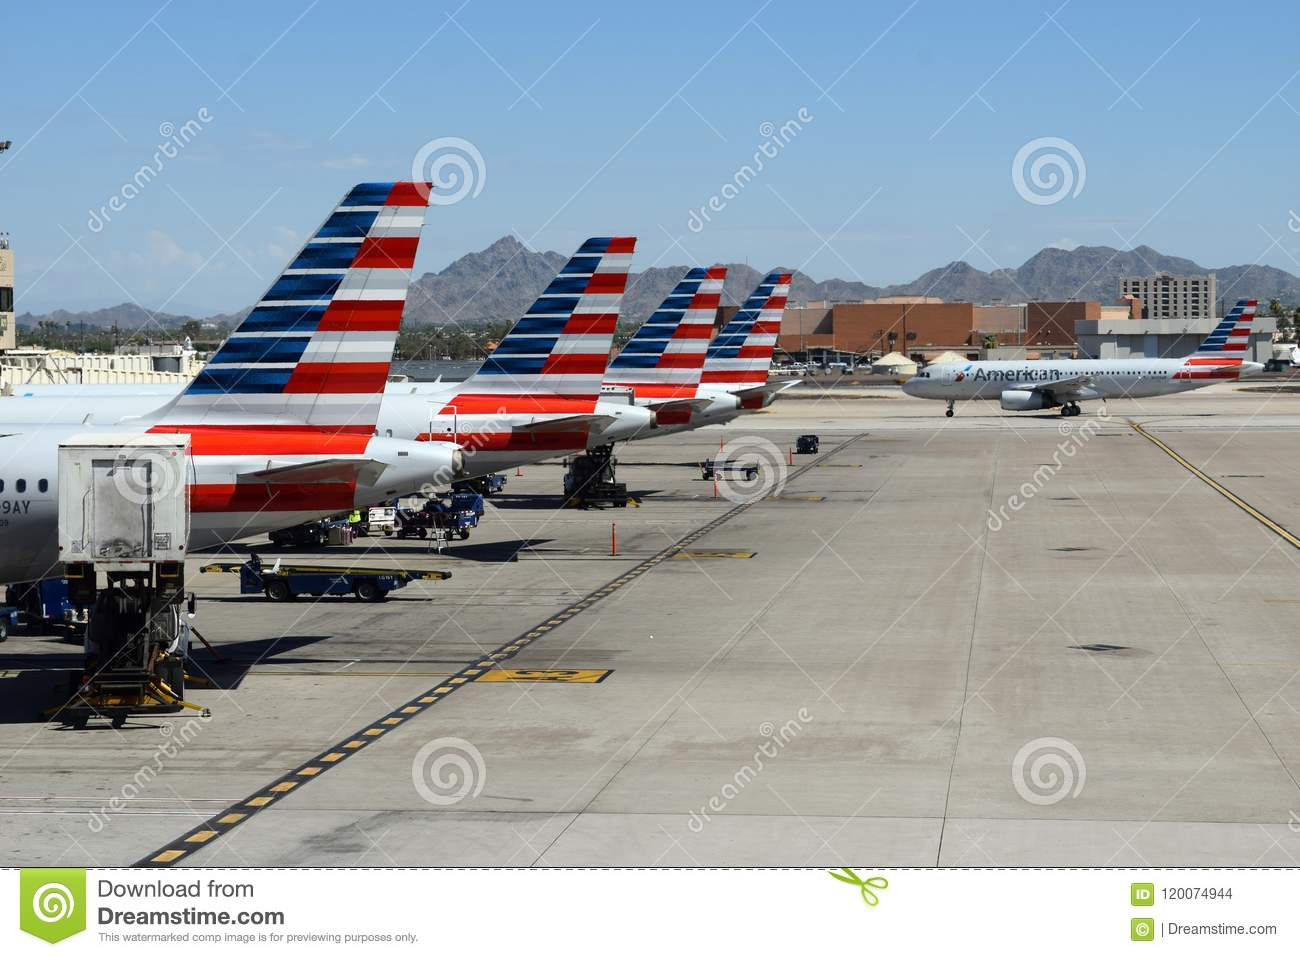 newest b3c64 d6bdb Four American Airlines aircraft with red white and blue livery lined up at  Sky Harbor gates with a fifth aircraft on the ramp jetway runway tarmac  taxiway ...